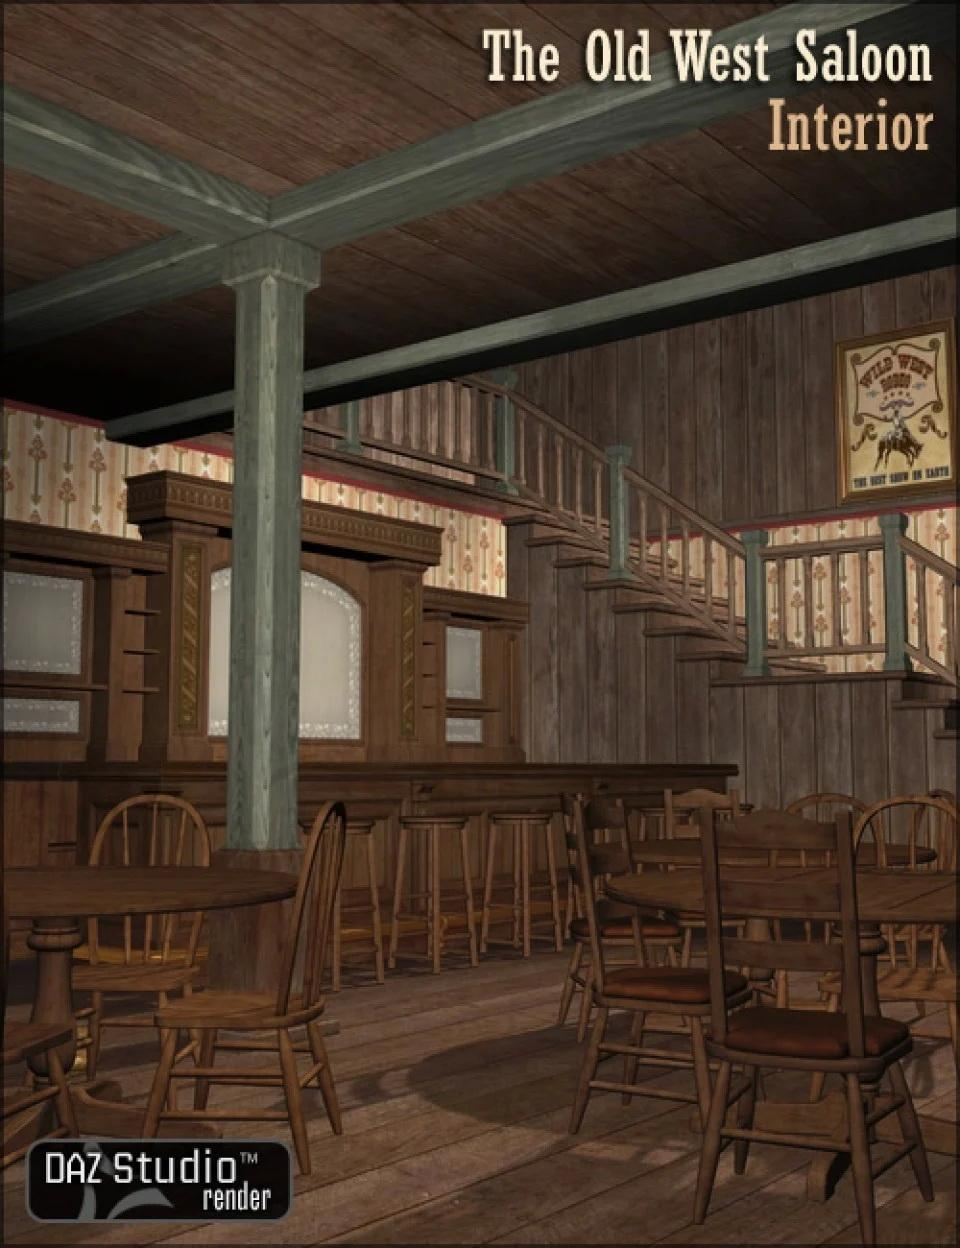 The Old West Saloon Interior